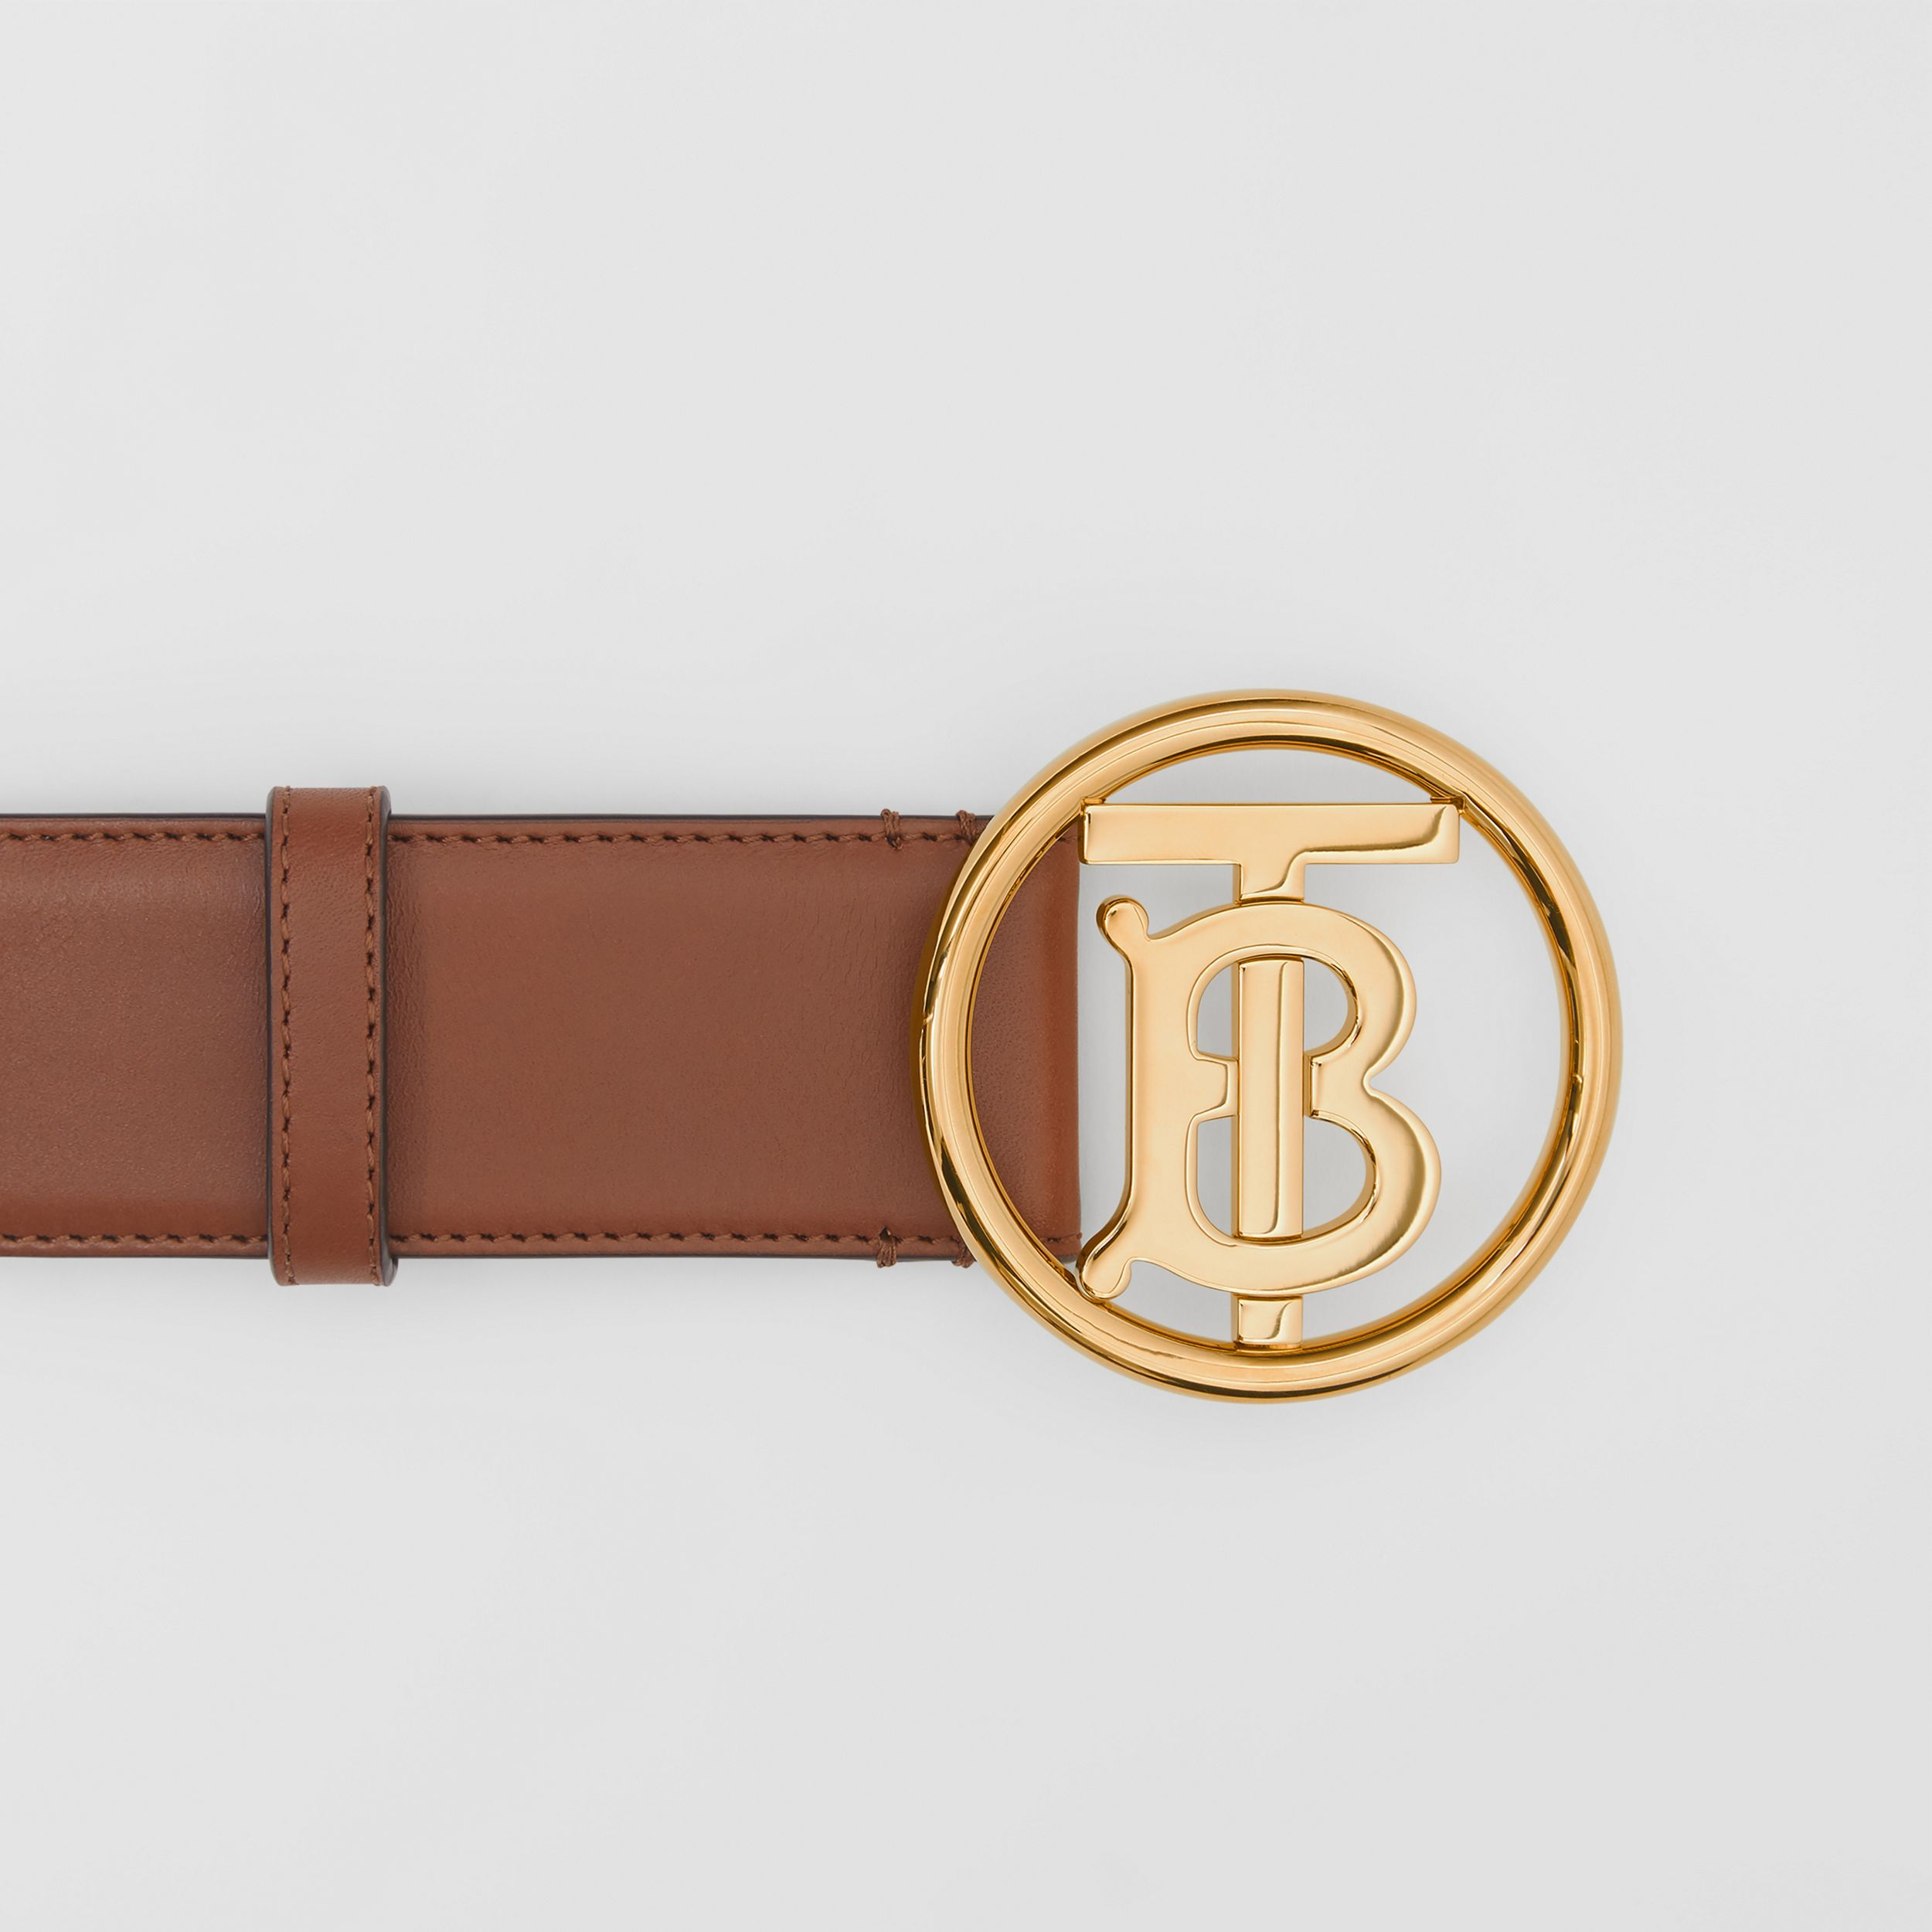 Monogram Motif Leather Belt in Tan/antique Dark Brass - Women | Burberry Hong Kong S.A.R. - 2